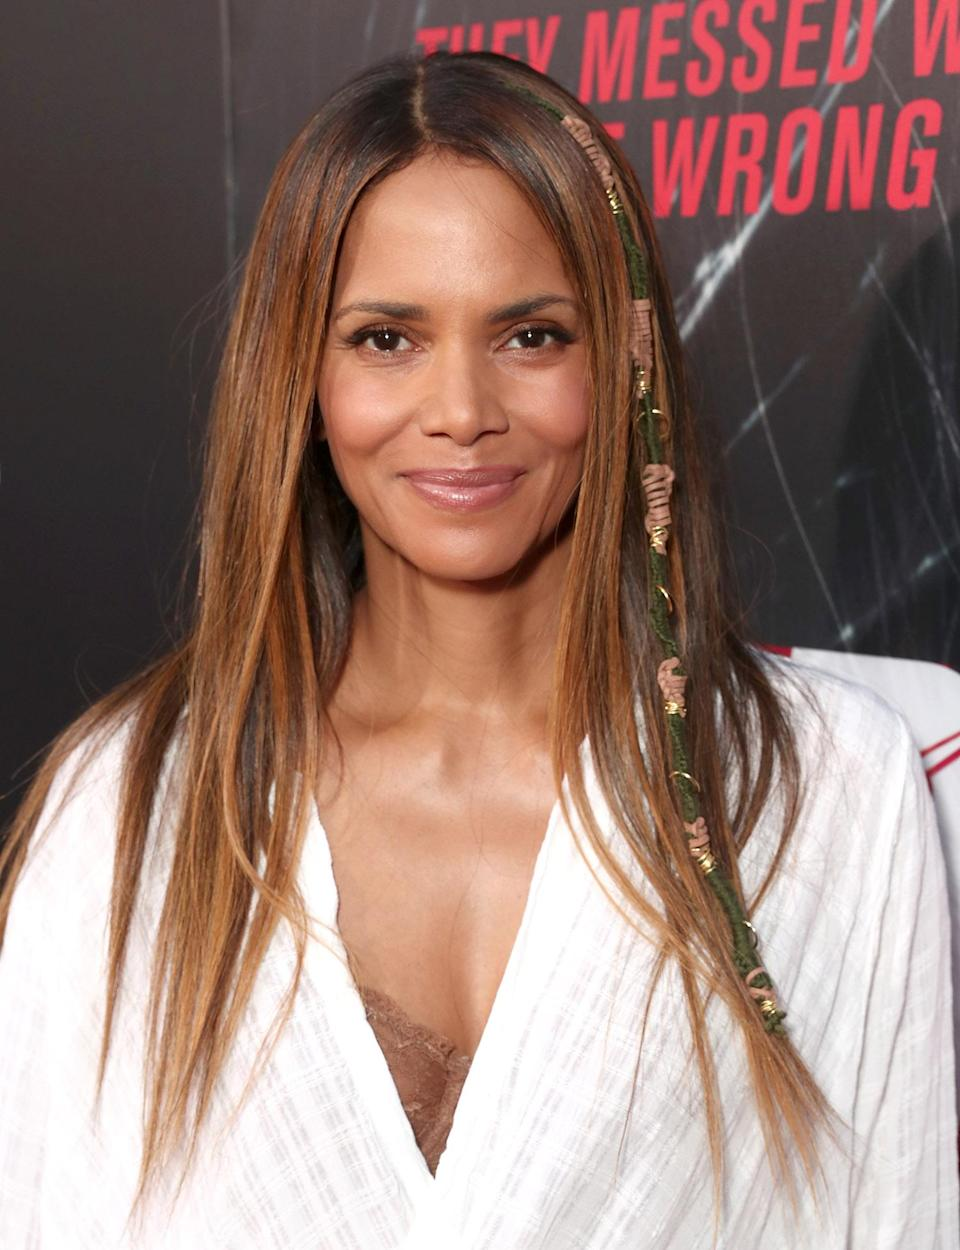 "<p>The <em>Kidnap</em> star has been having some amazing hair days while promoting her new film. Here <a href=""https://www.yahoo.com/beauty/halle-berry-turning-everyones-favorite-hair-crush-174855626.html"" data-ylk=""slk:Berry rocks the popular hair wraps;outcm:mb_qualified_link;_E:mb_qualified_link;ct:story;"" class=""link rapid-noclick-resp yahoo-link"">Berry rocks the popular hair wraps</a> trend, adding a bit of texture to her pin-straight strands. (Photo: Getty Images) </p>"